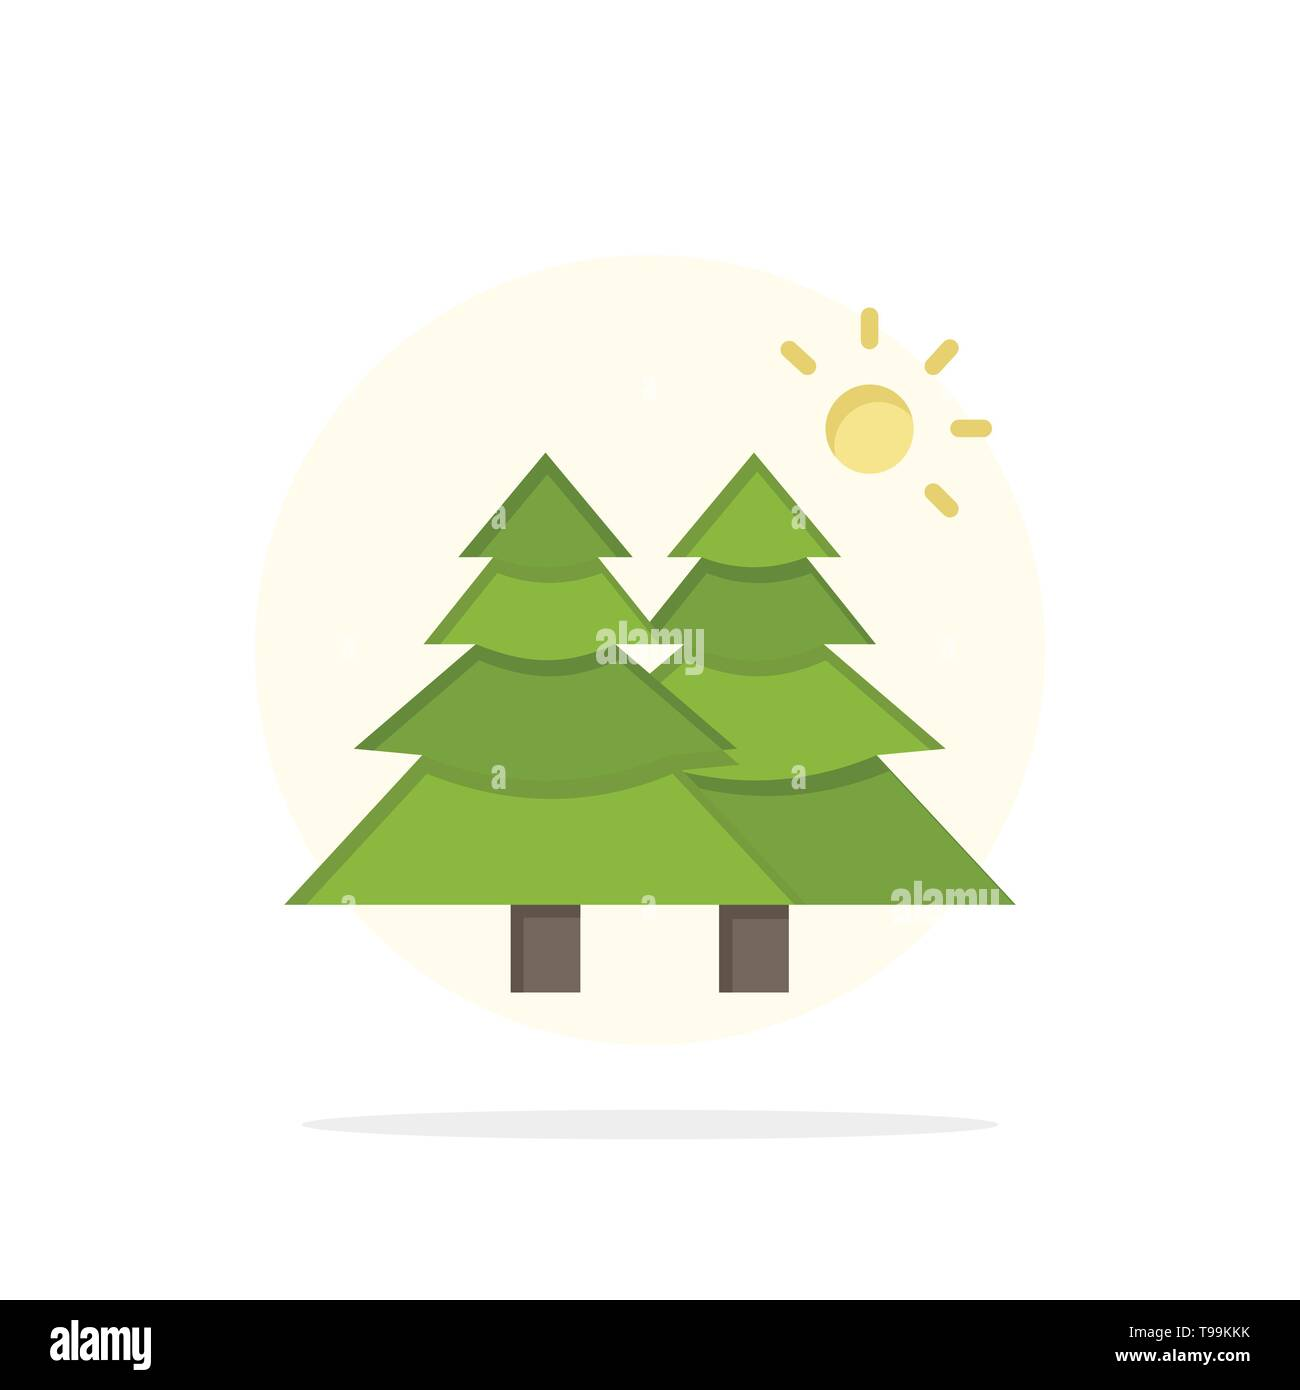 Fir, Forest, Nature, Trees Abstract Circle Background Flat color Icon - Stock Image